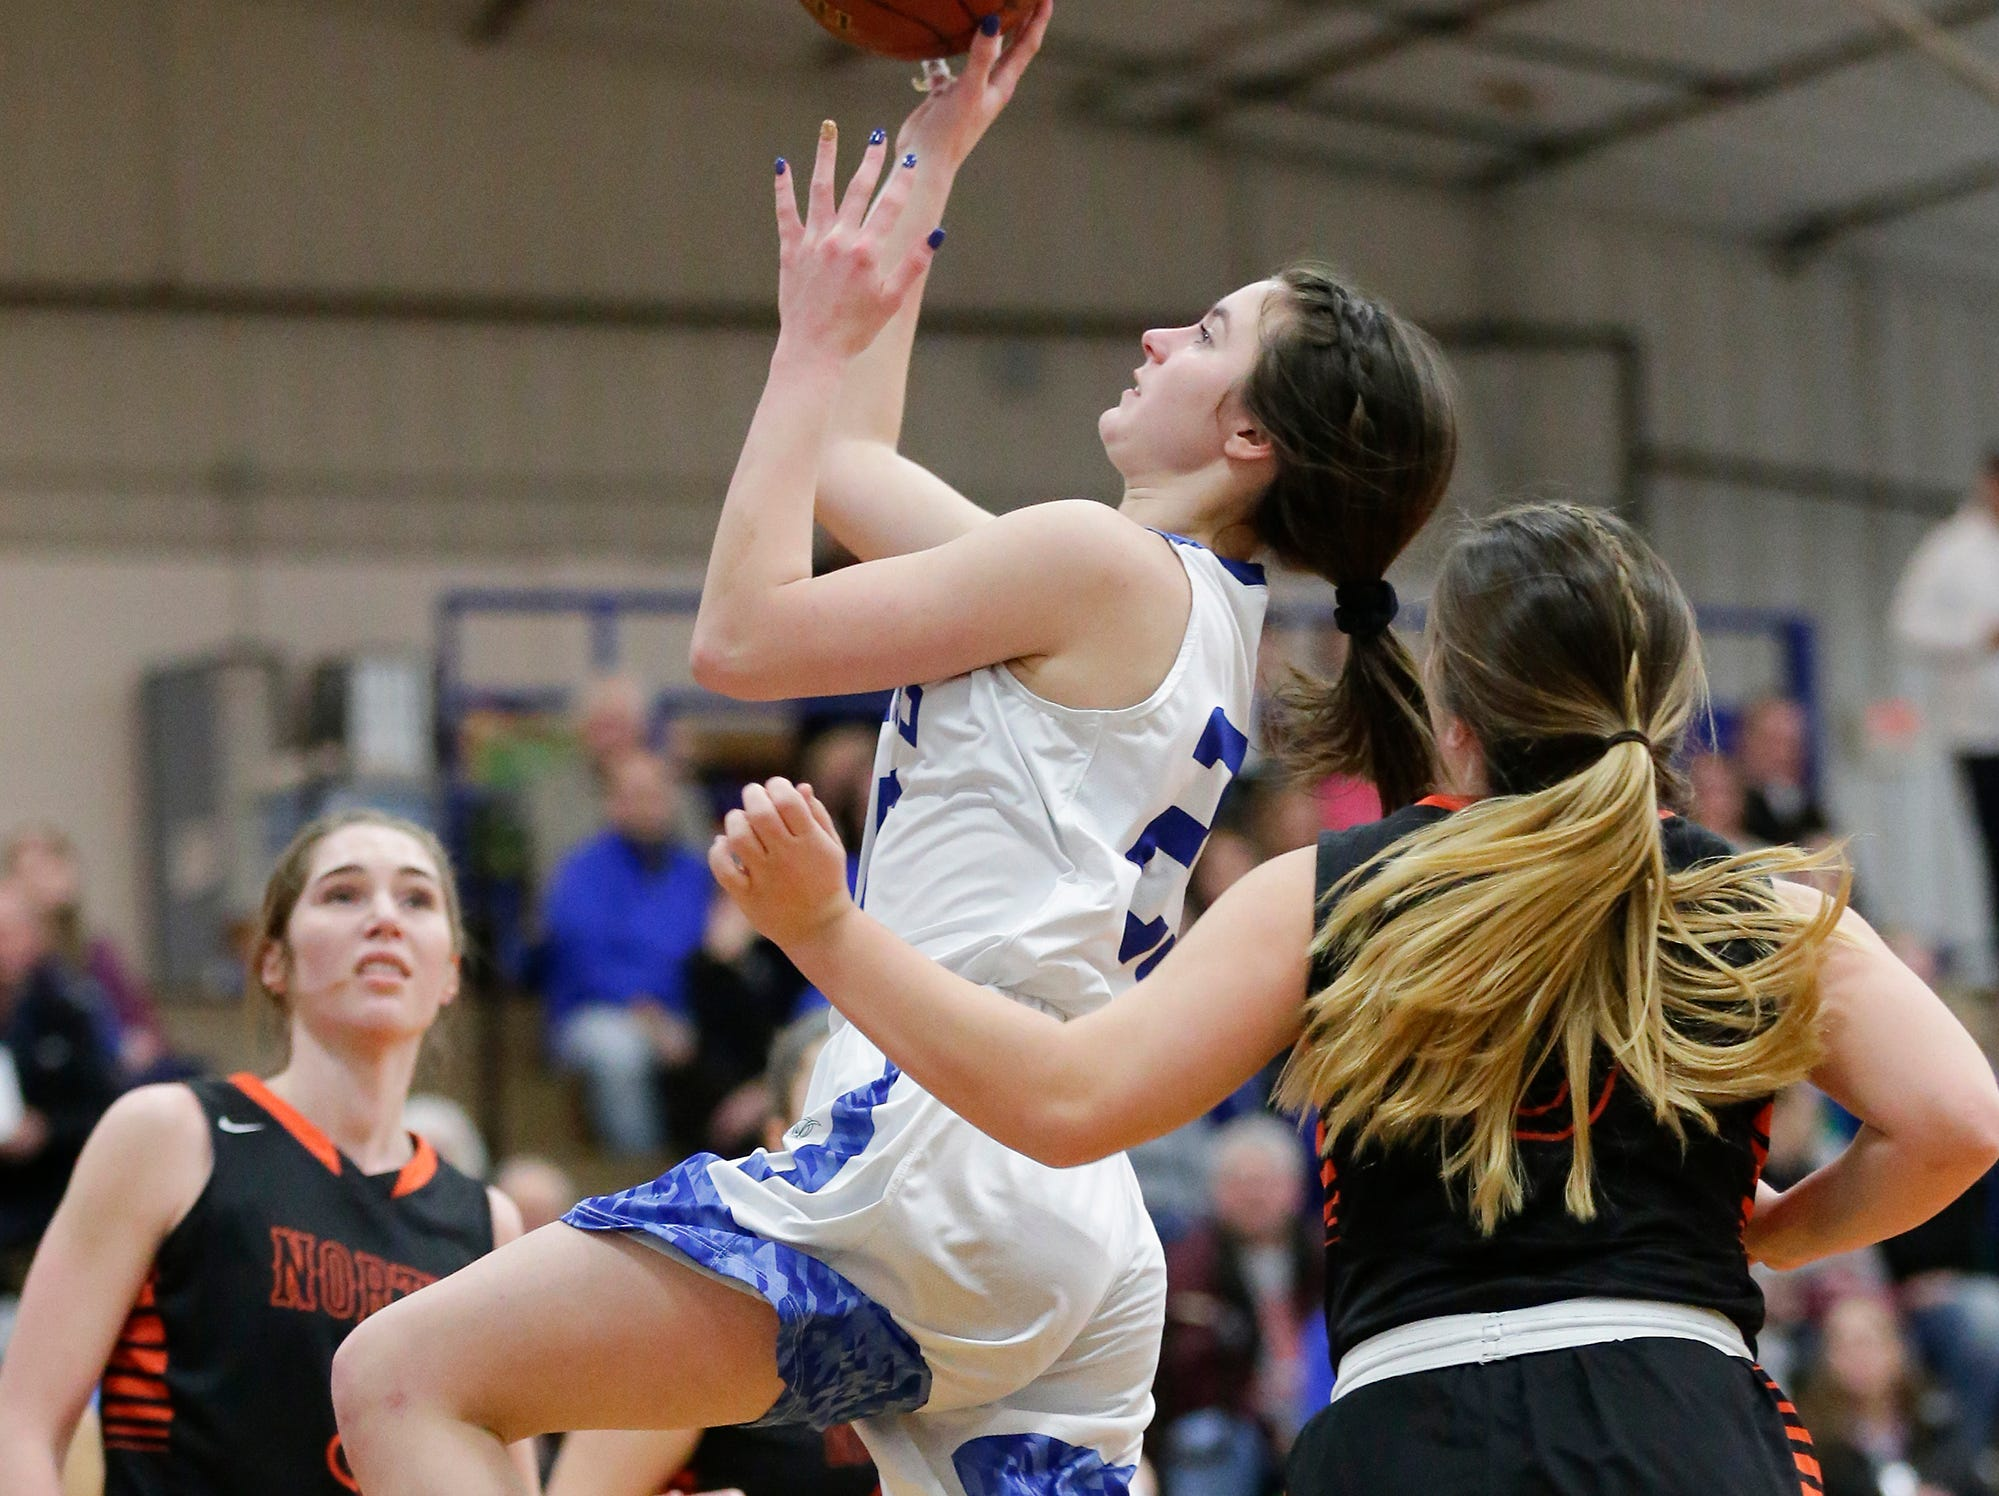 Winnebago Lutheran Academy girls basketball's Geneva Hewitt goes up for a basket against North Fond du Lac High School January 10, 2019 during their game in Fond du Lac. Doug Raflik/USA TODAY NETWORK-Wisconsin